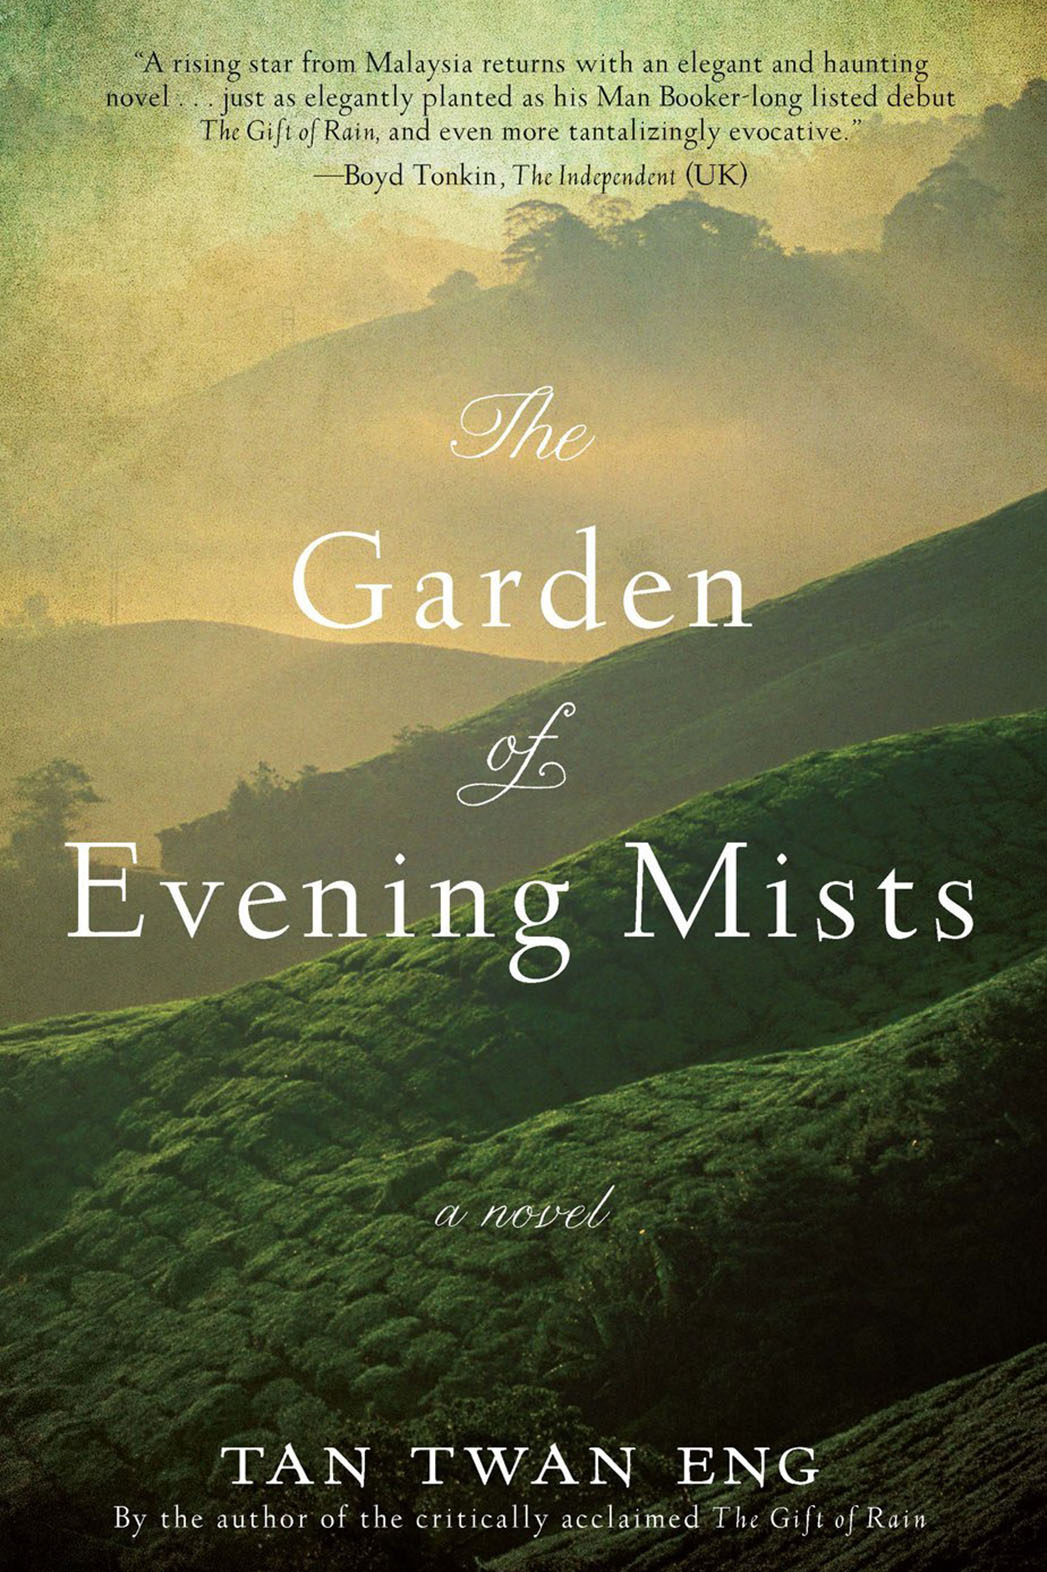 The Garden of Evening Mists - P 2015